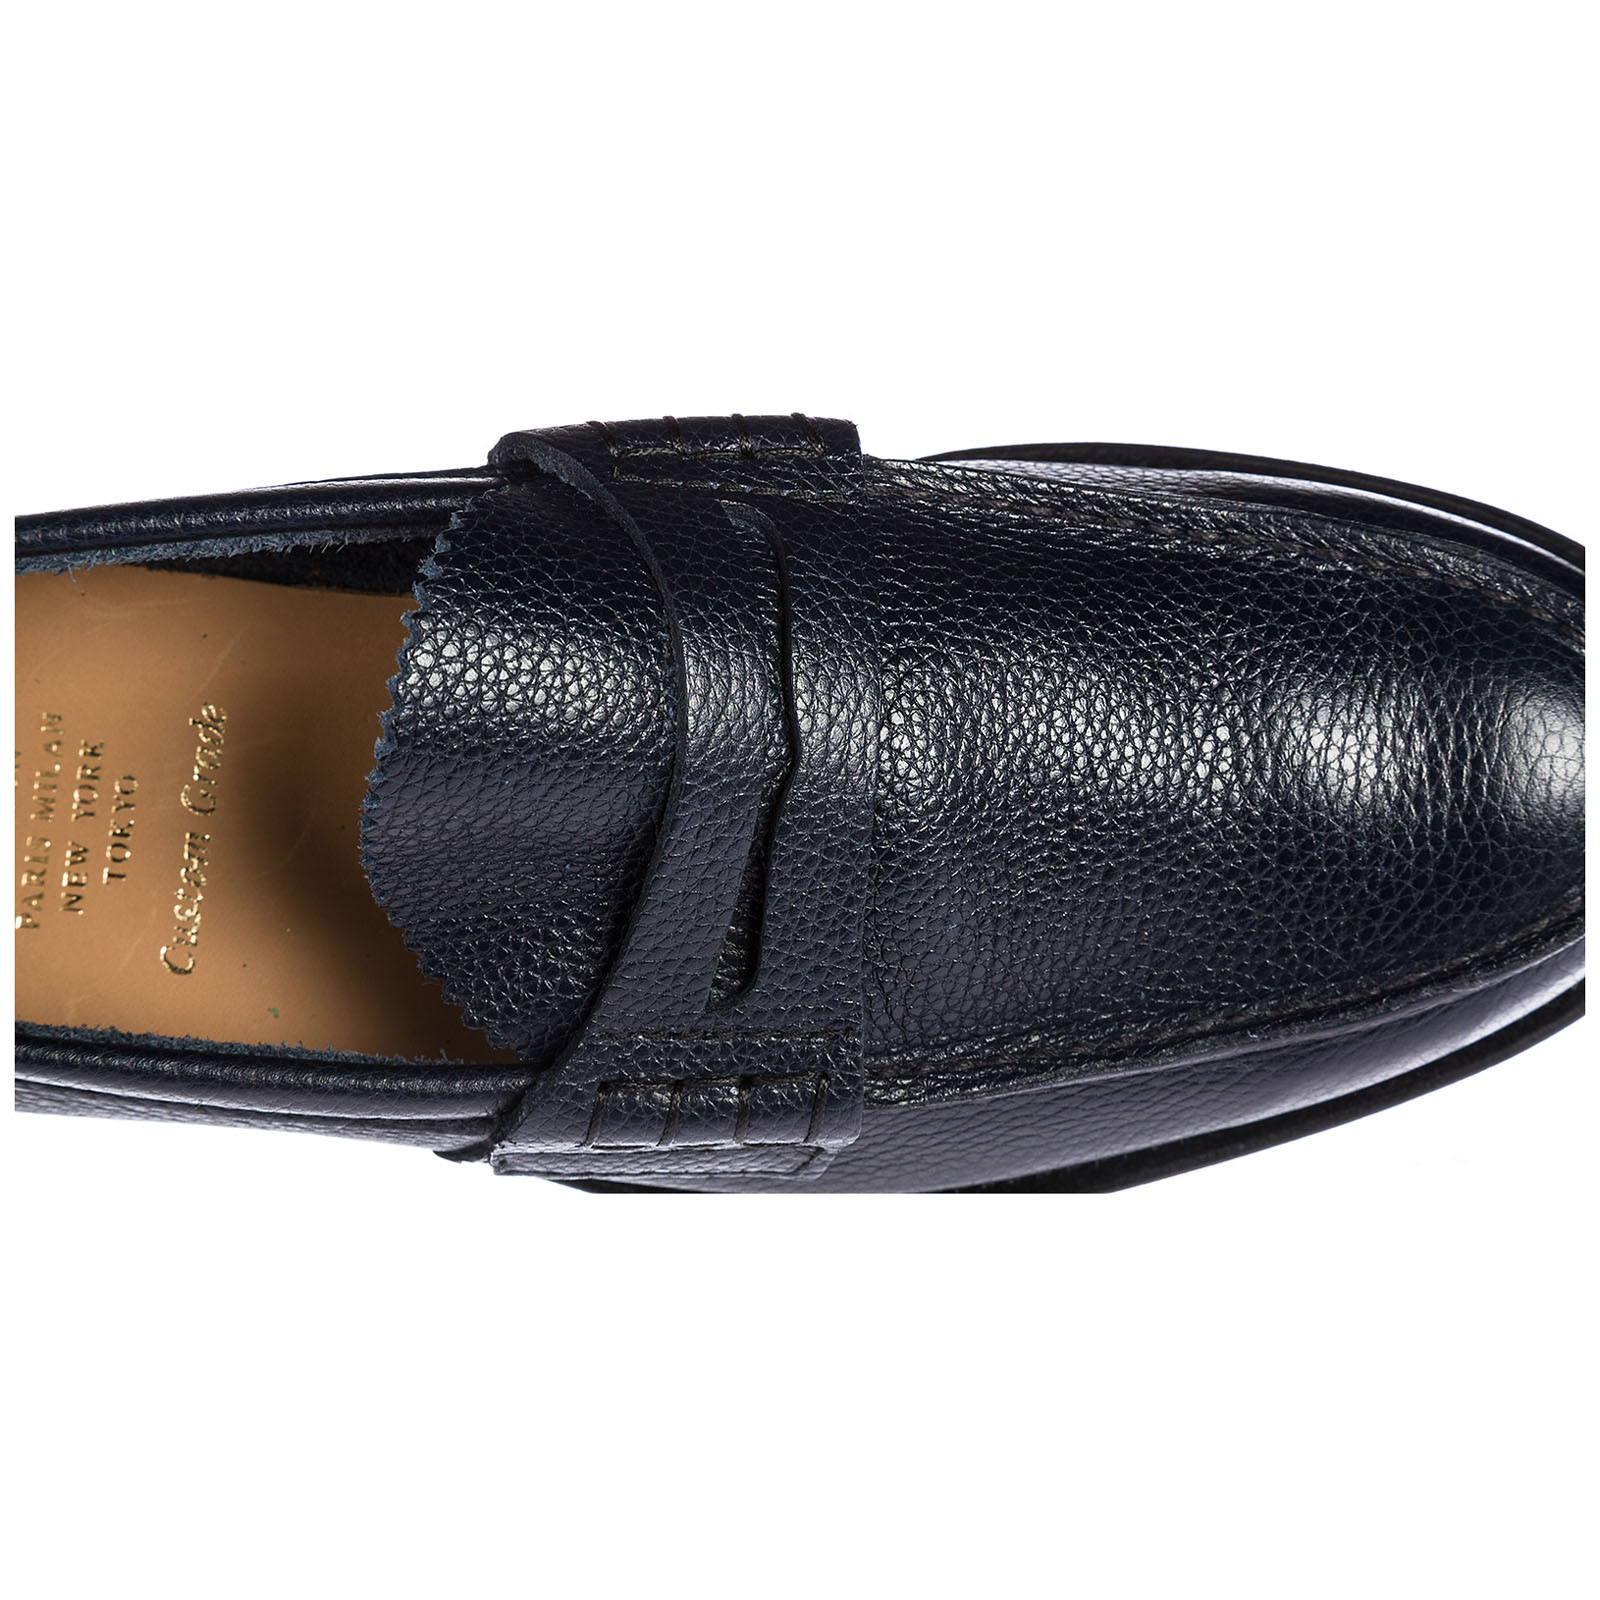 Men's leather loafers moccasins  pembrey